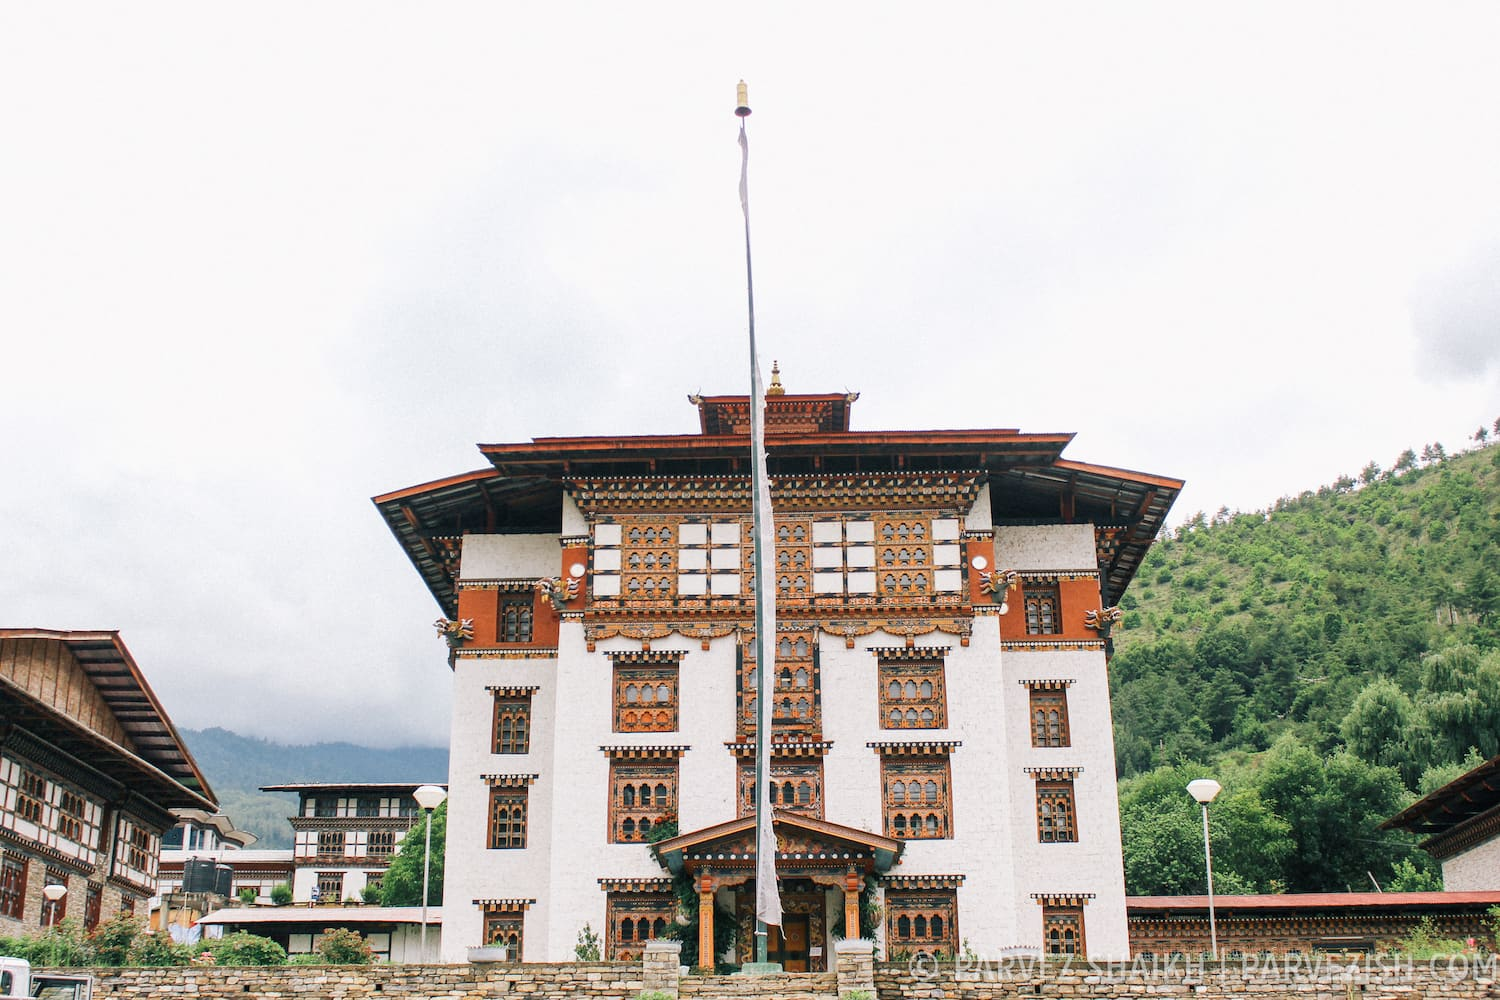 A Typical Building in Bhutan